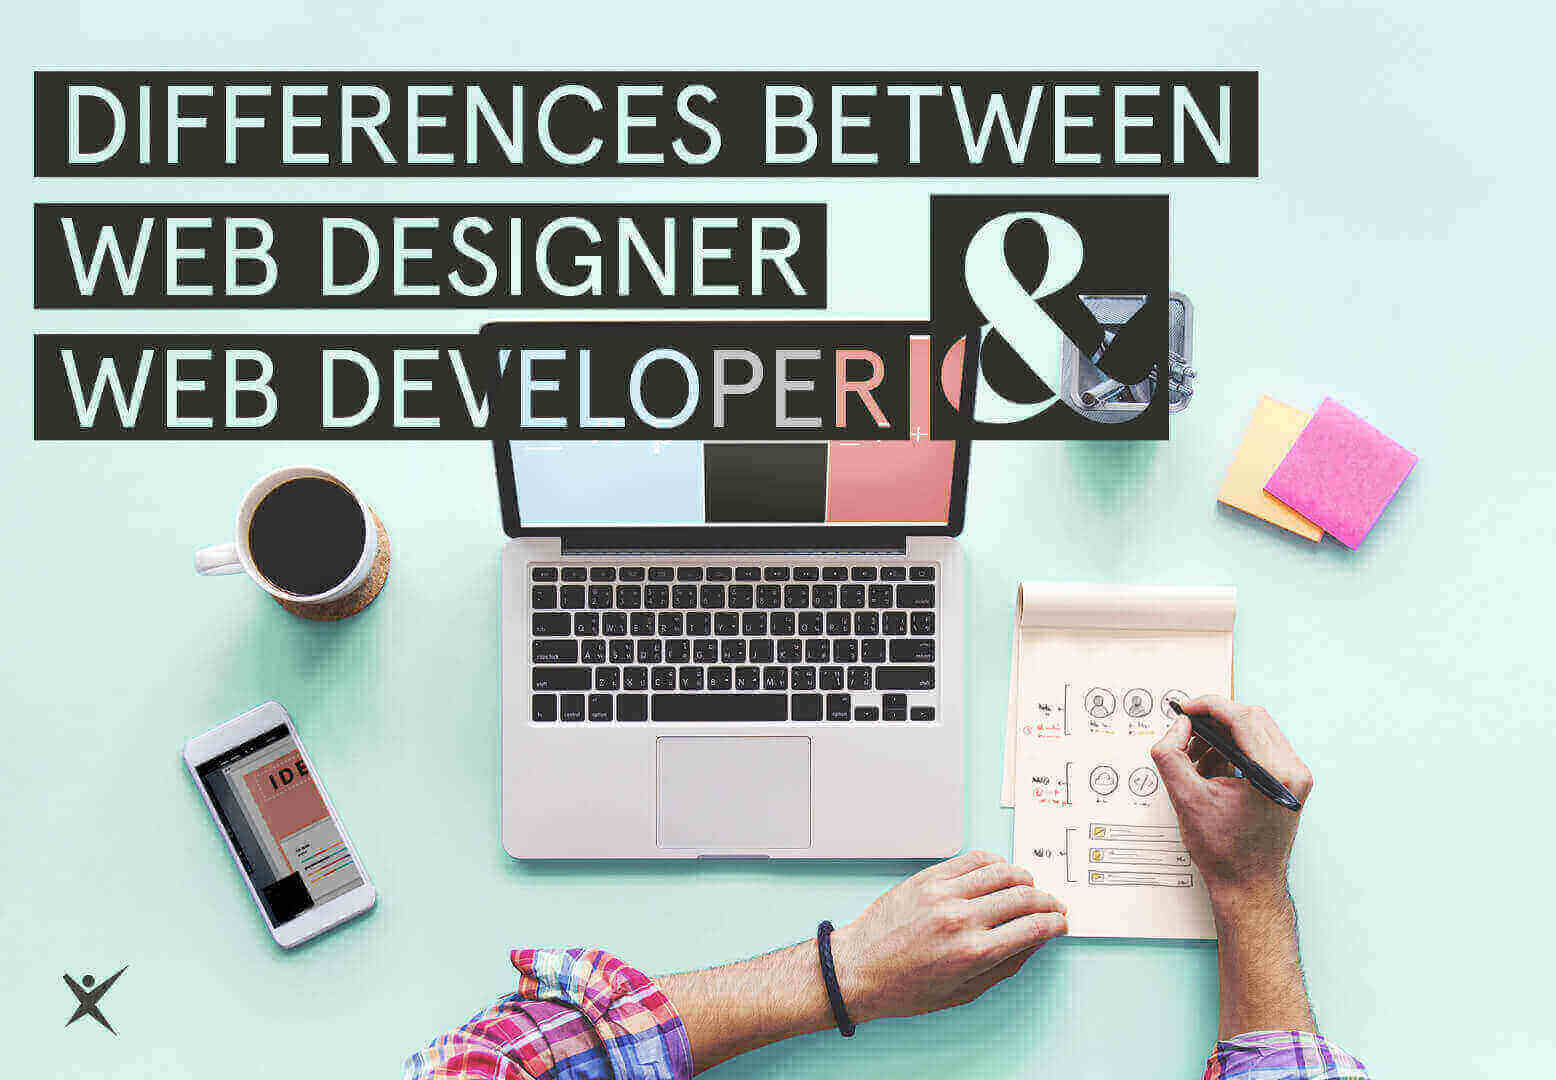 Differences Between Web Developer and Web Designer